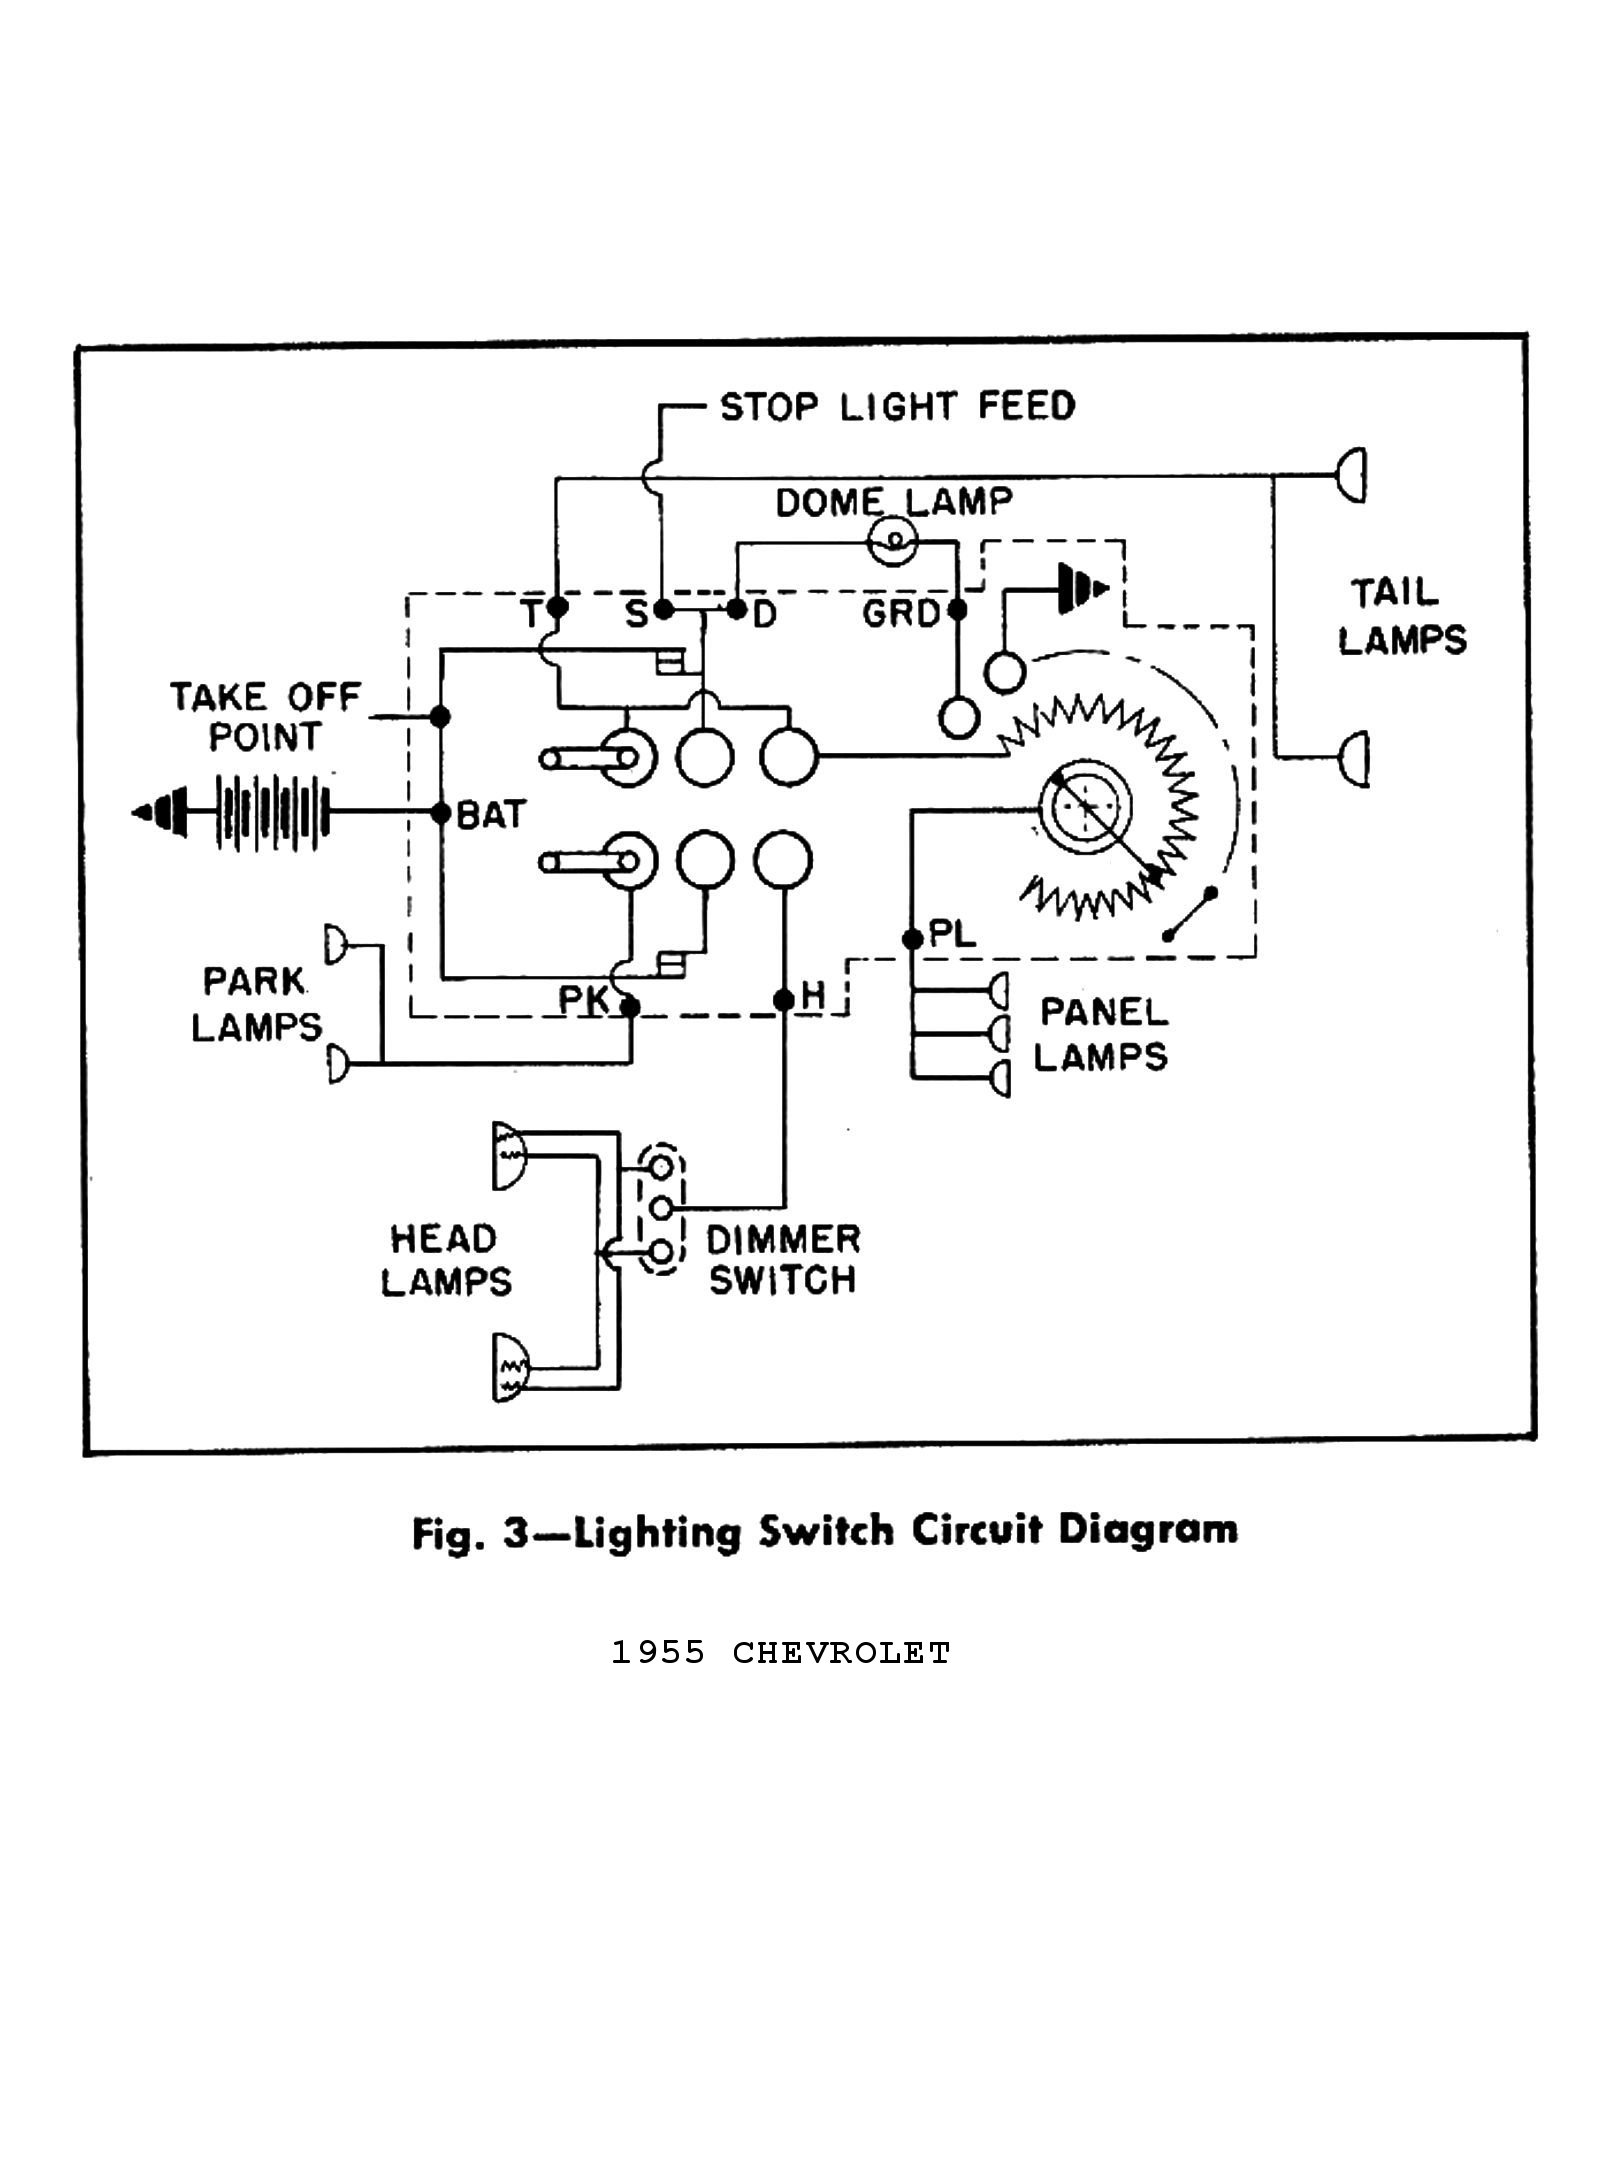 hight resolution of gm headlight switch wiring diagram 407 wiring diagram third level rh 9 14 22 jacobwinterstein com 1956 chevy headlight switch wiring diagram 69 gmc